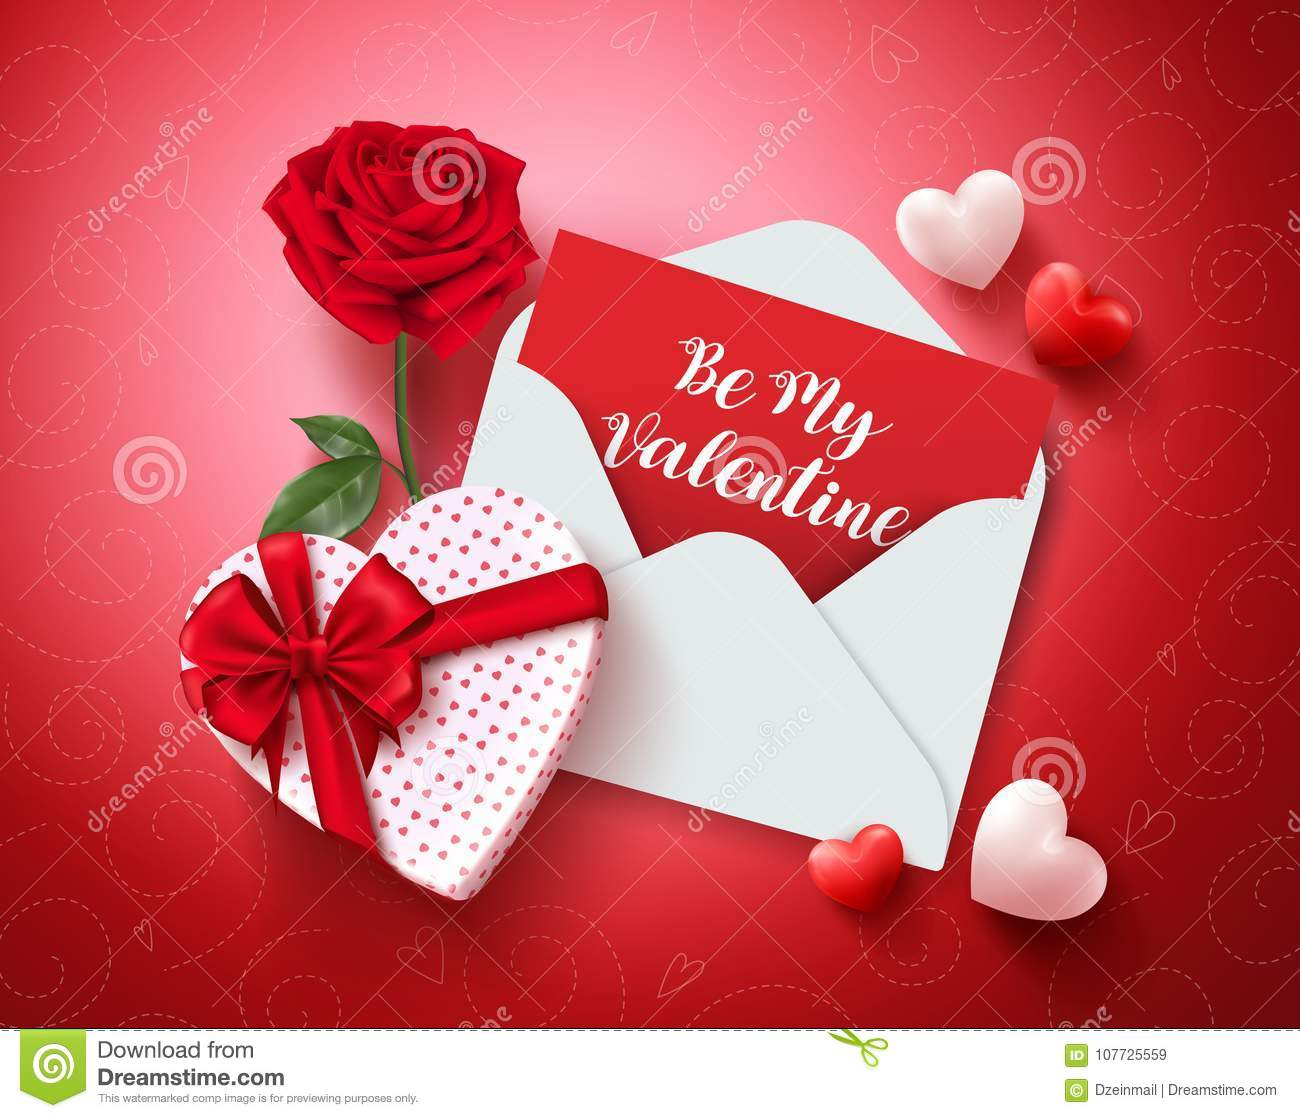 Be My Valentine Greeting Card Vector Design With Love Letter Rose